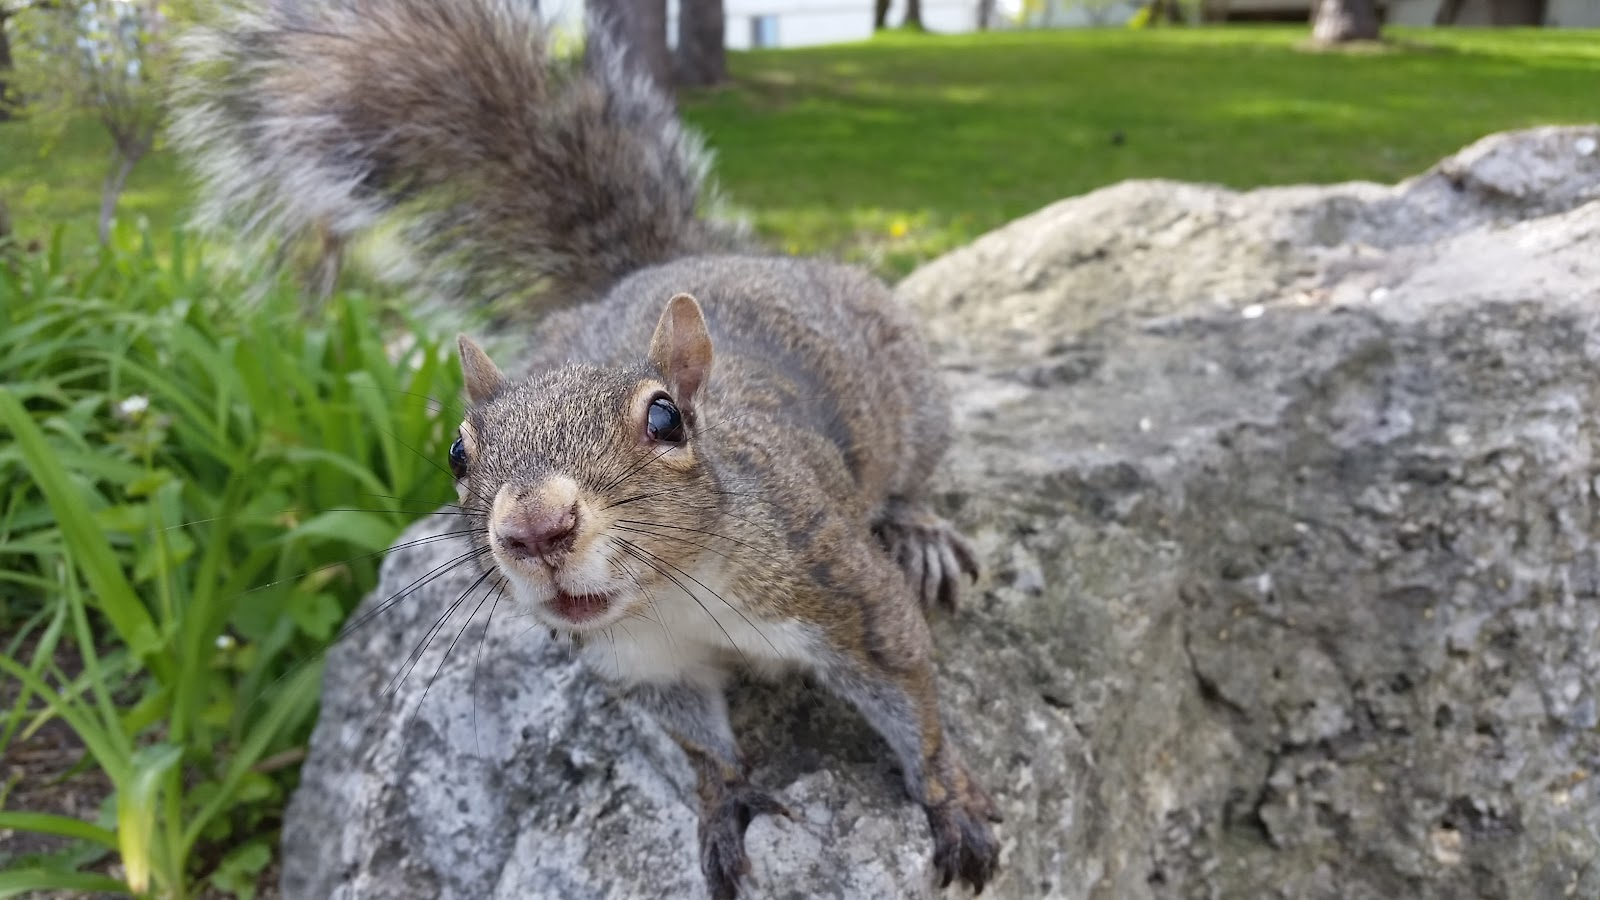 This squirrel tried to take my phone a second after taking this photo closeup of the squirrel.